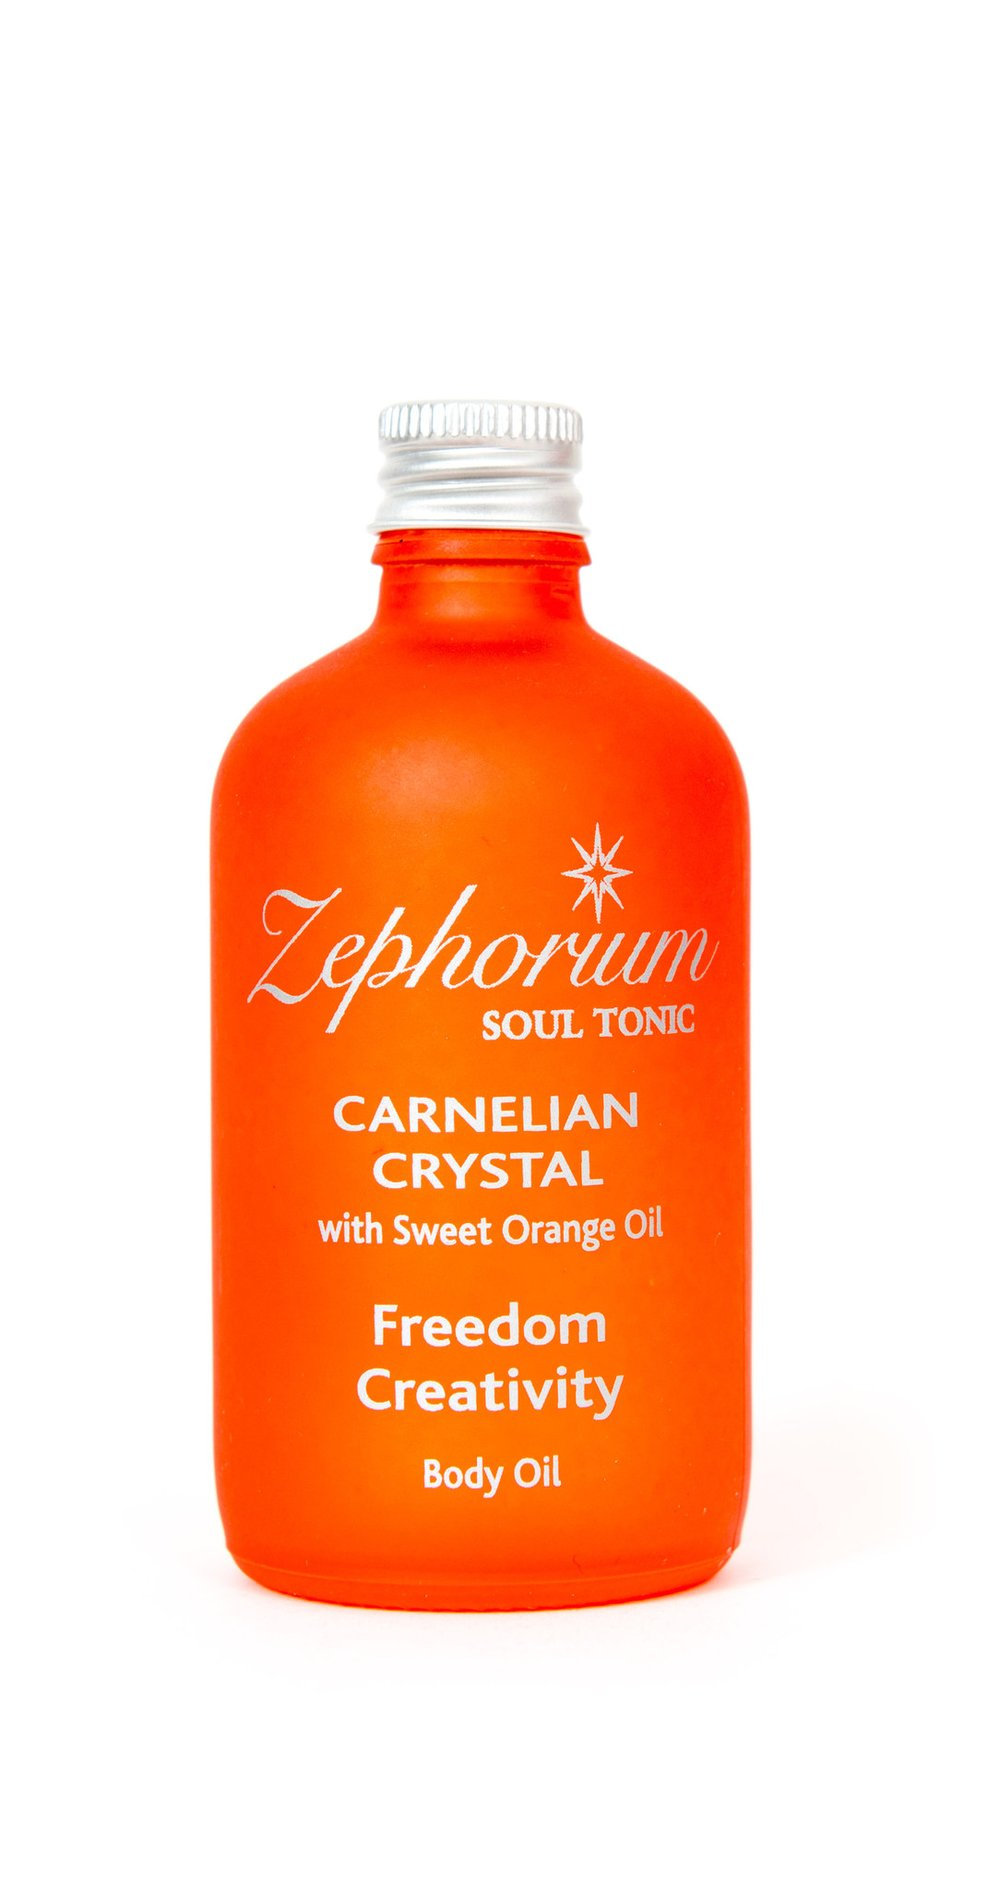 Carnelian Crystal Body Oil